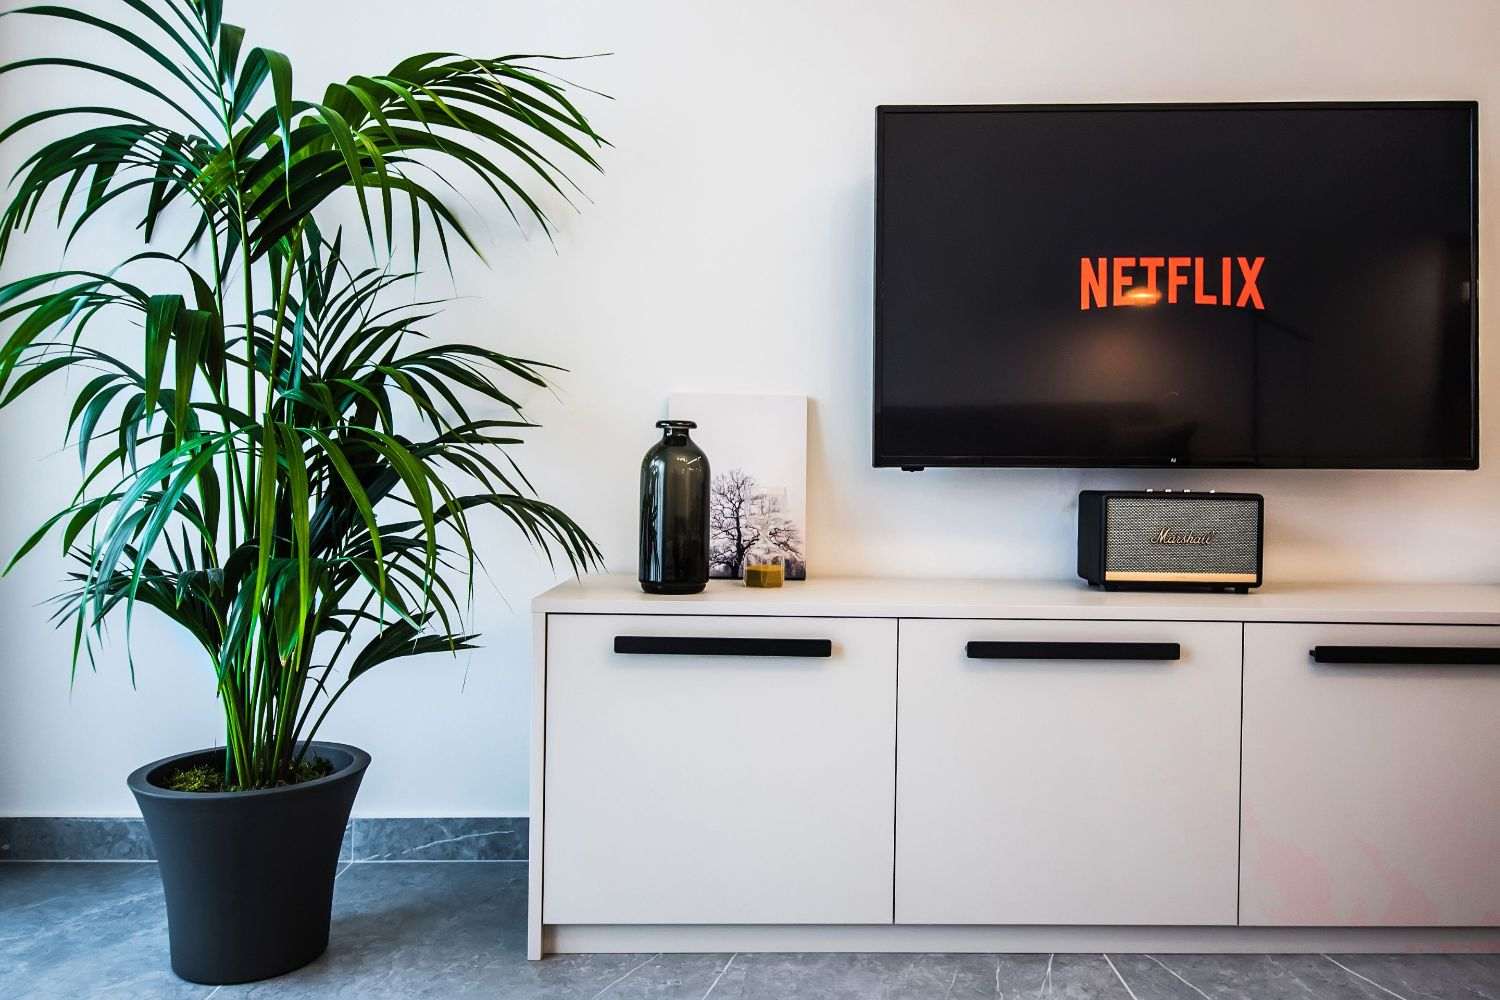 Clio Living room with Netflix TV